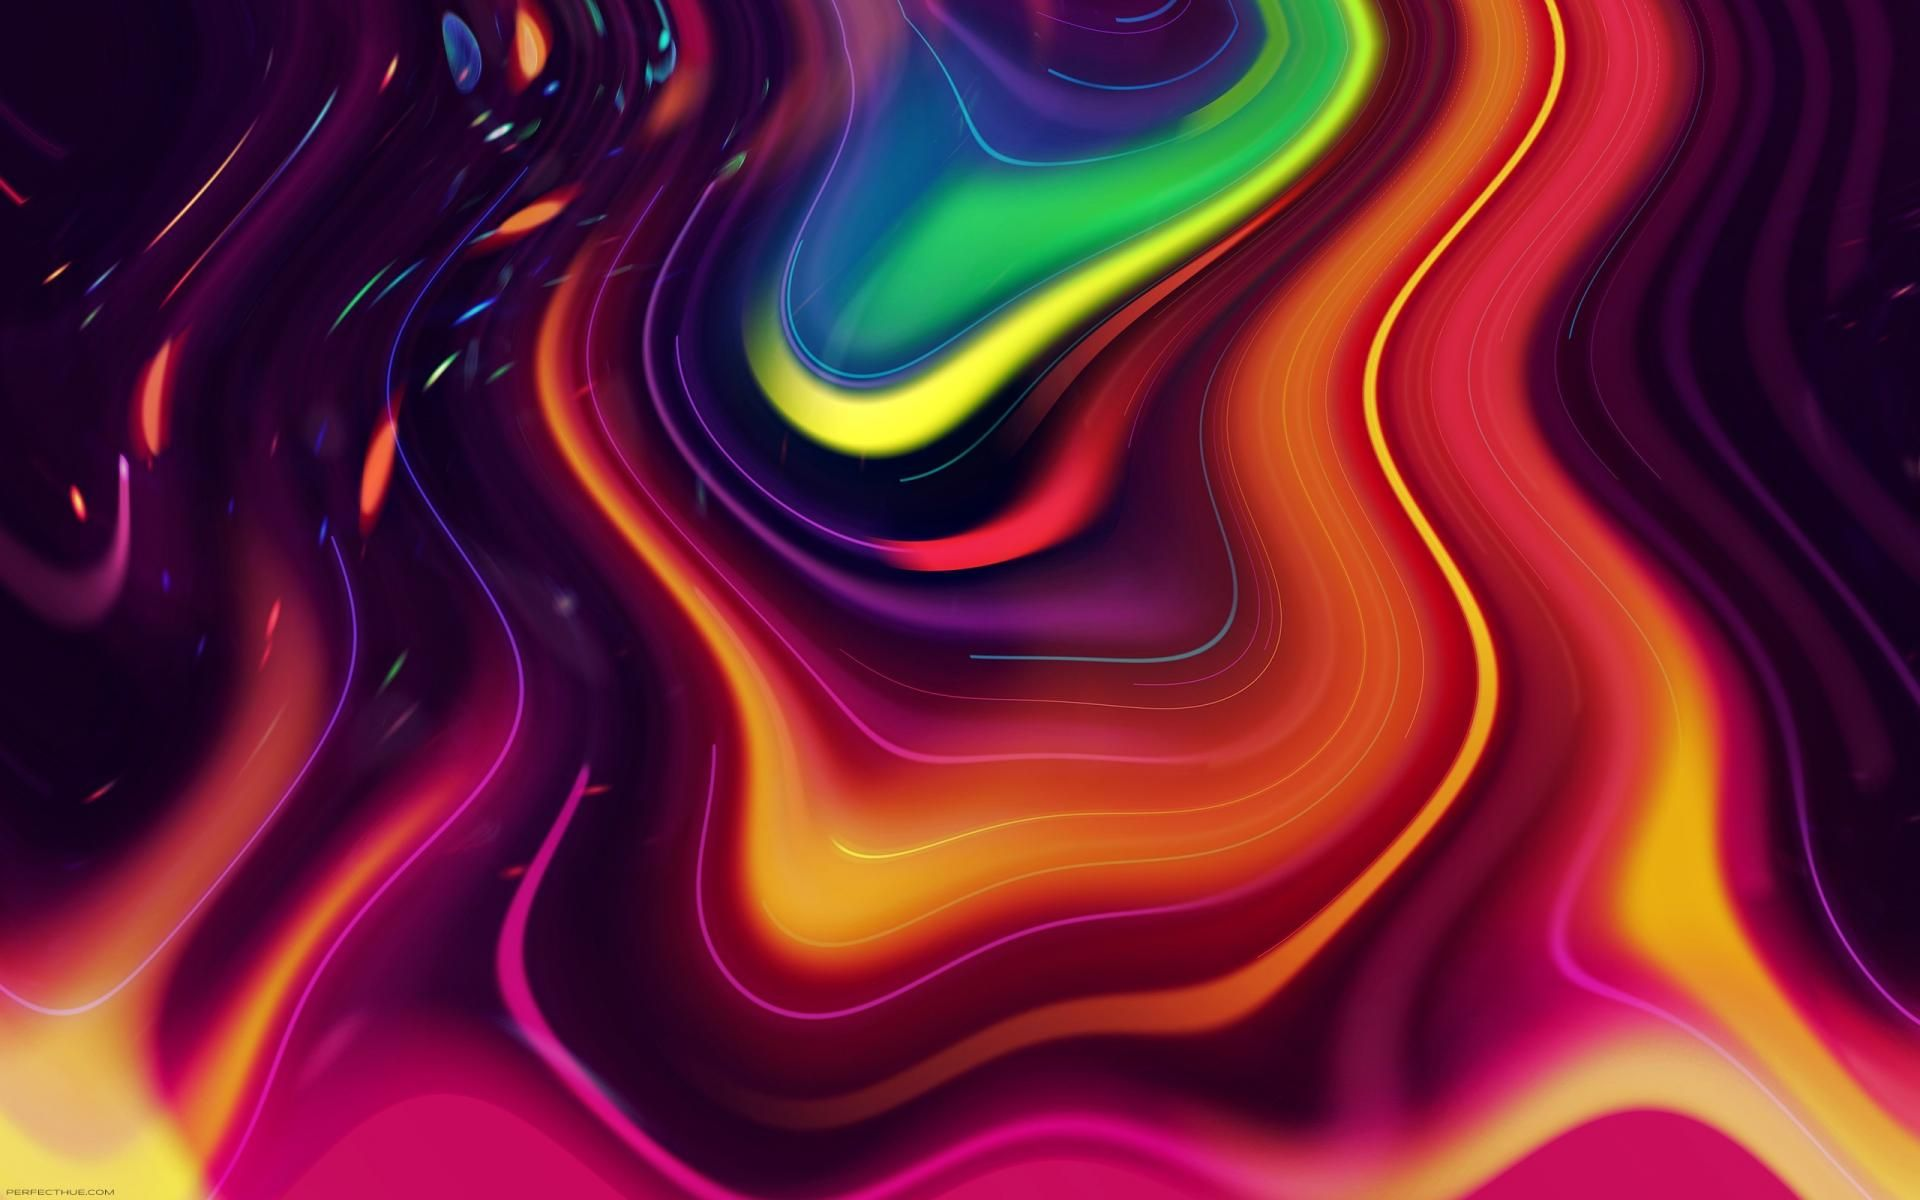 Abstract Swirl Colors Psychedelic Bright Wallpaper Background Colorful Wallpaper Abstract Wallpaper Bright Wallpaper